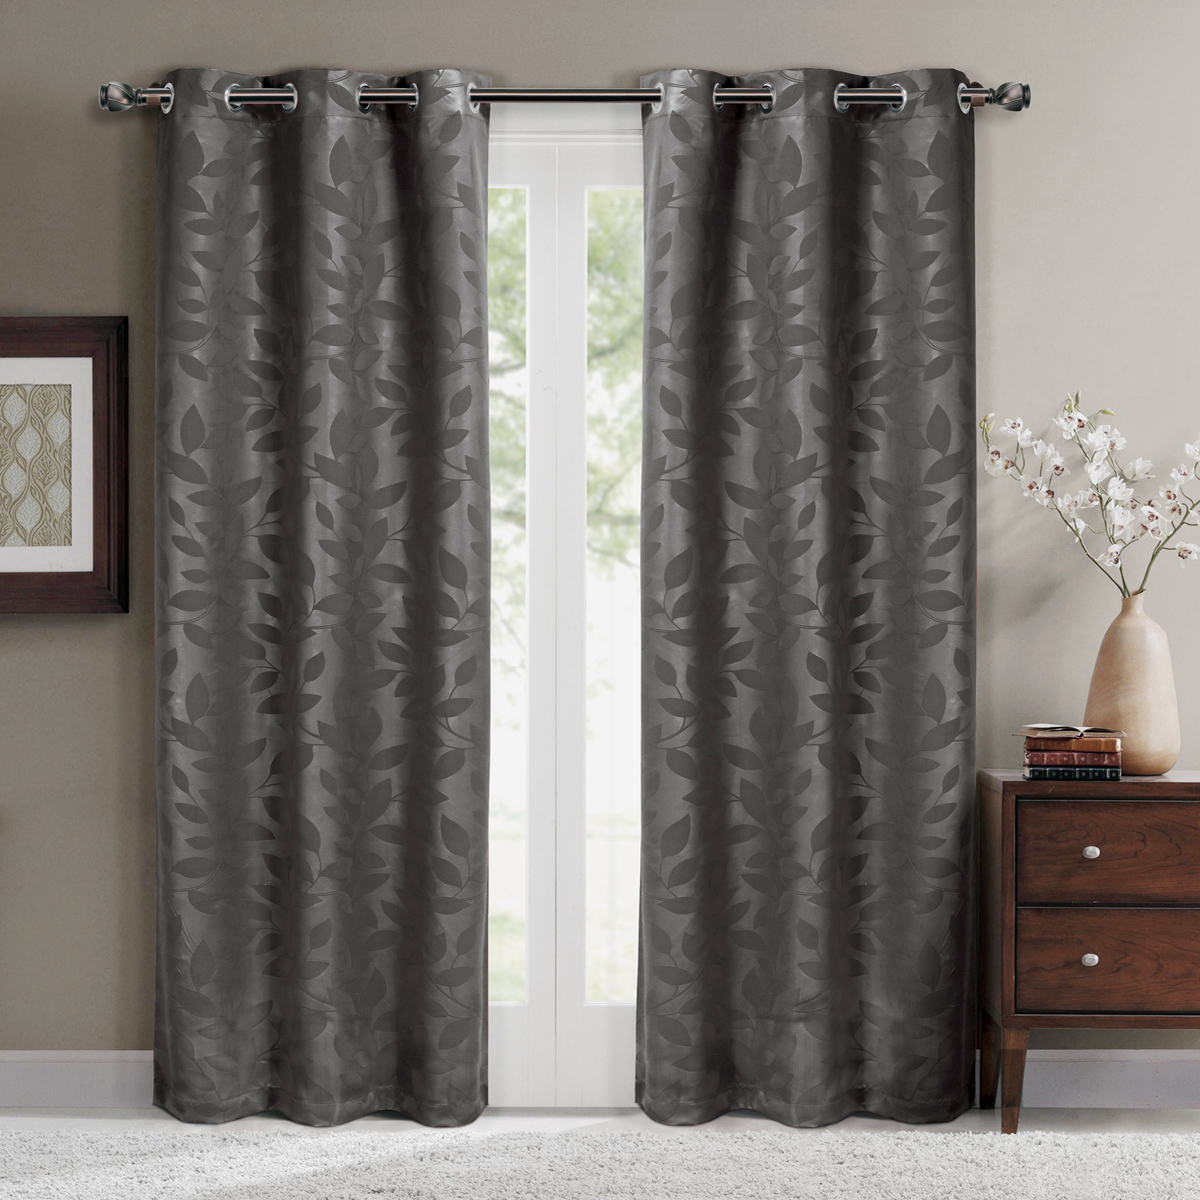 "Virginia Pair (Set of 2) Blackout Weave Energy-Saving Thermal Curtain Panels Grommet Embossed fabric Leafy Designs - 74""W X 84"" L - Chocolate"